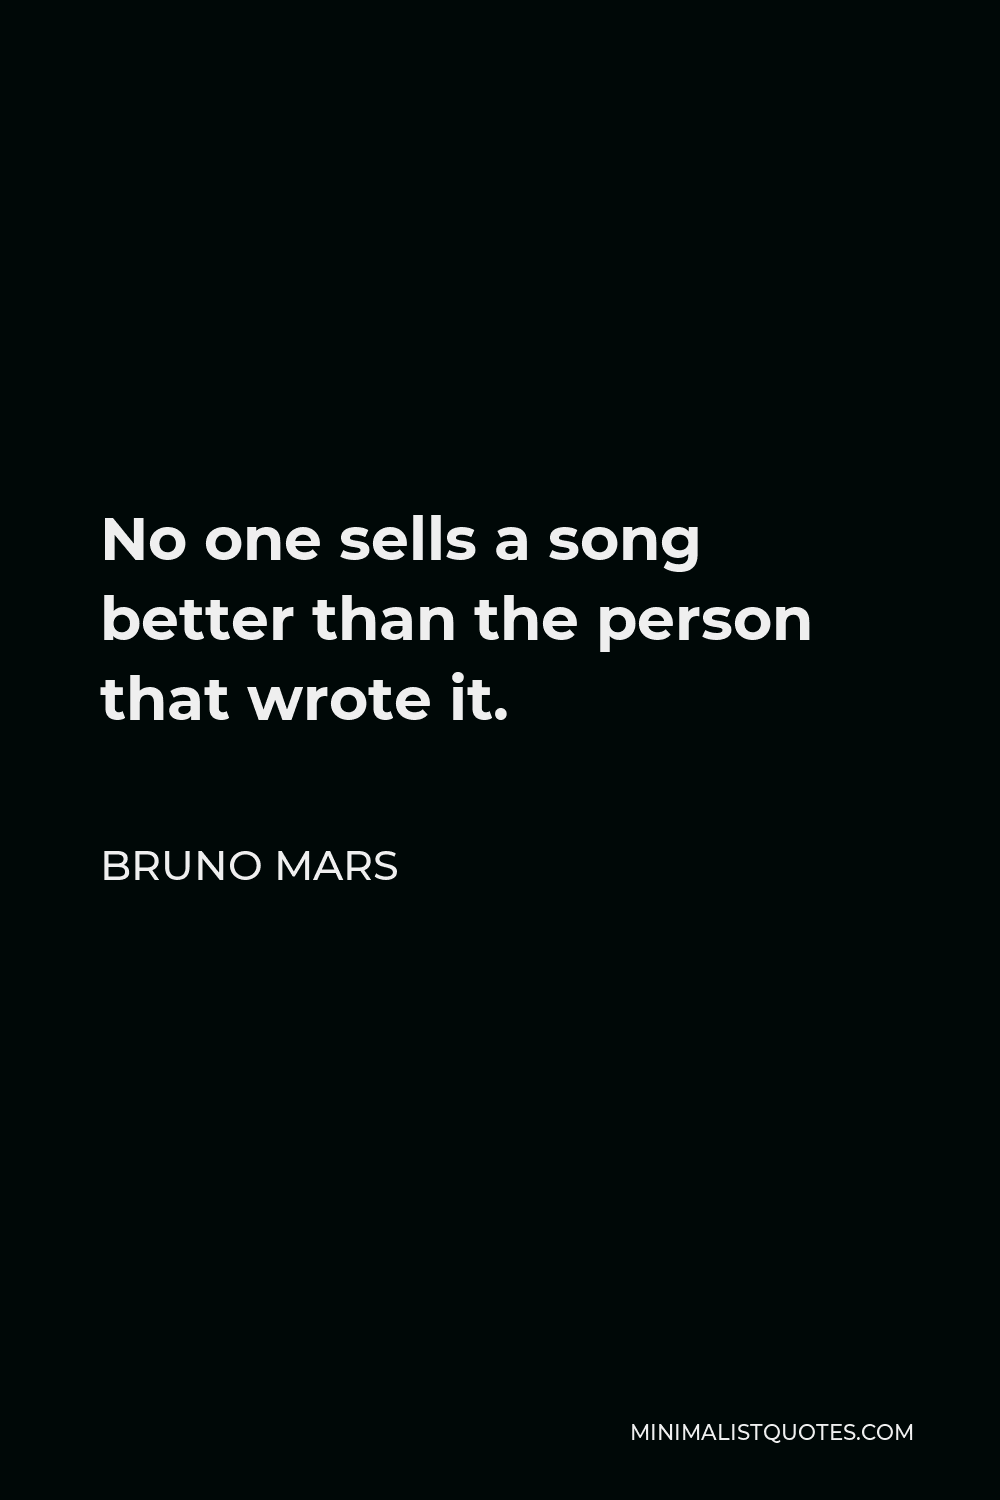 Bruno Mars Quote - No one sells a song better than the person that wrote it.